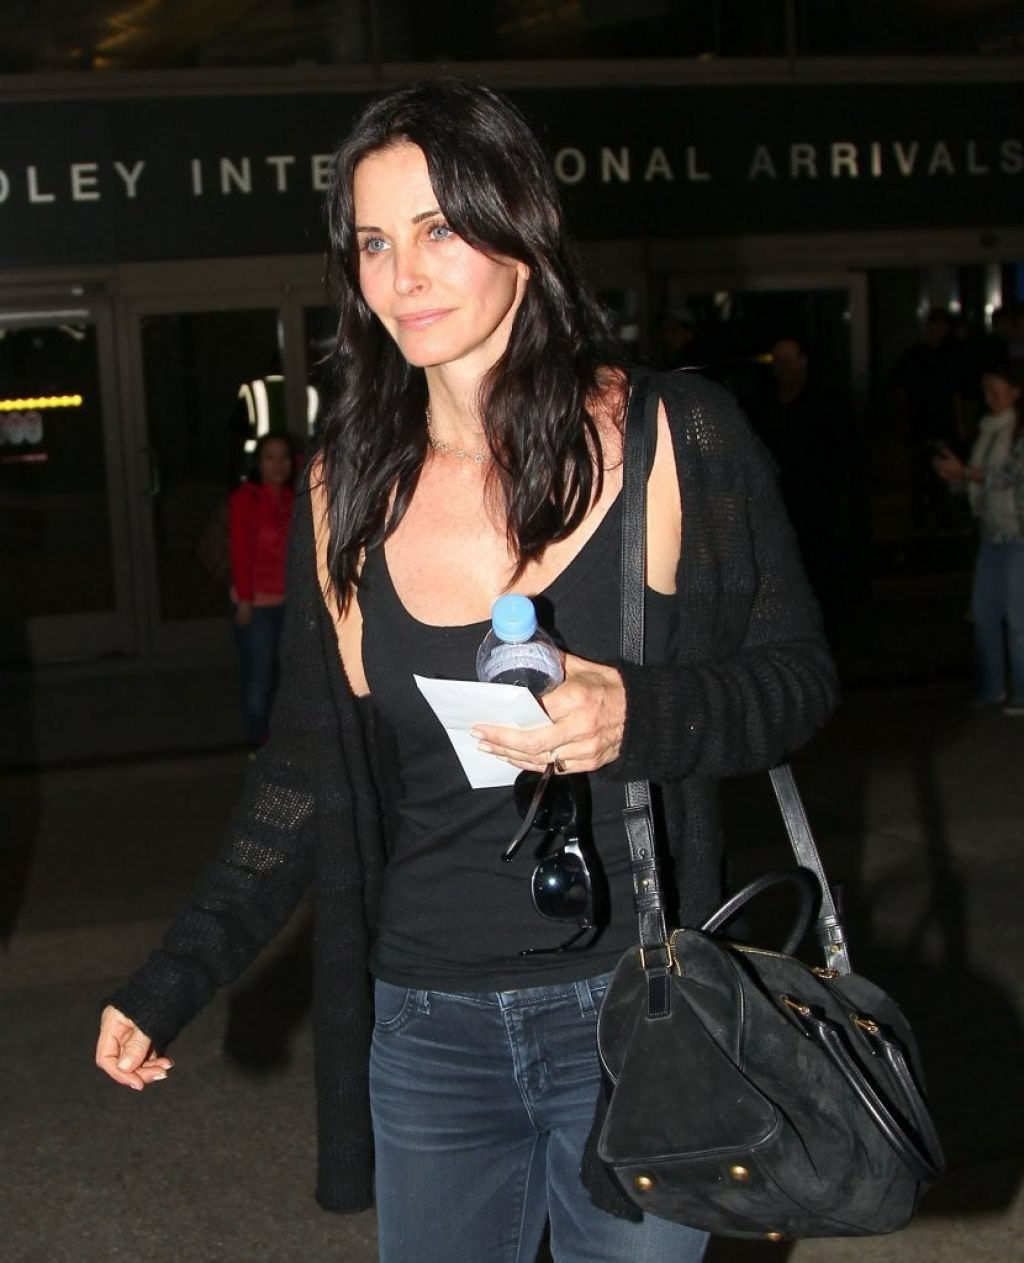 Courteney Cox in Jeans - At LAX Airport, Feb. 2014